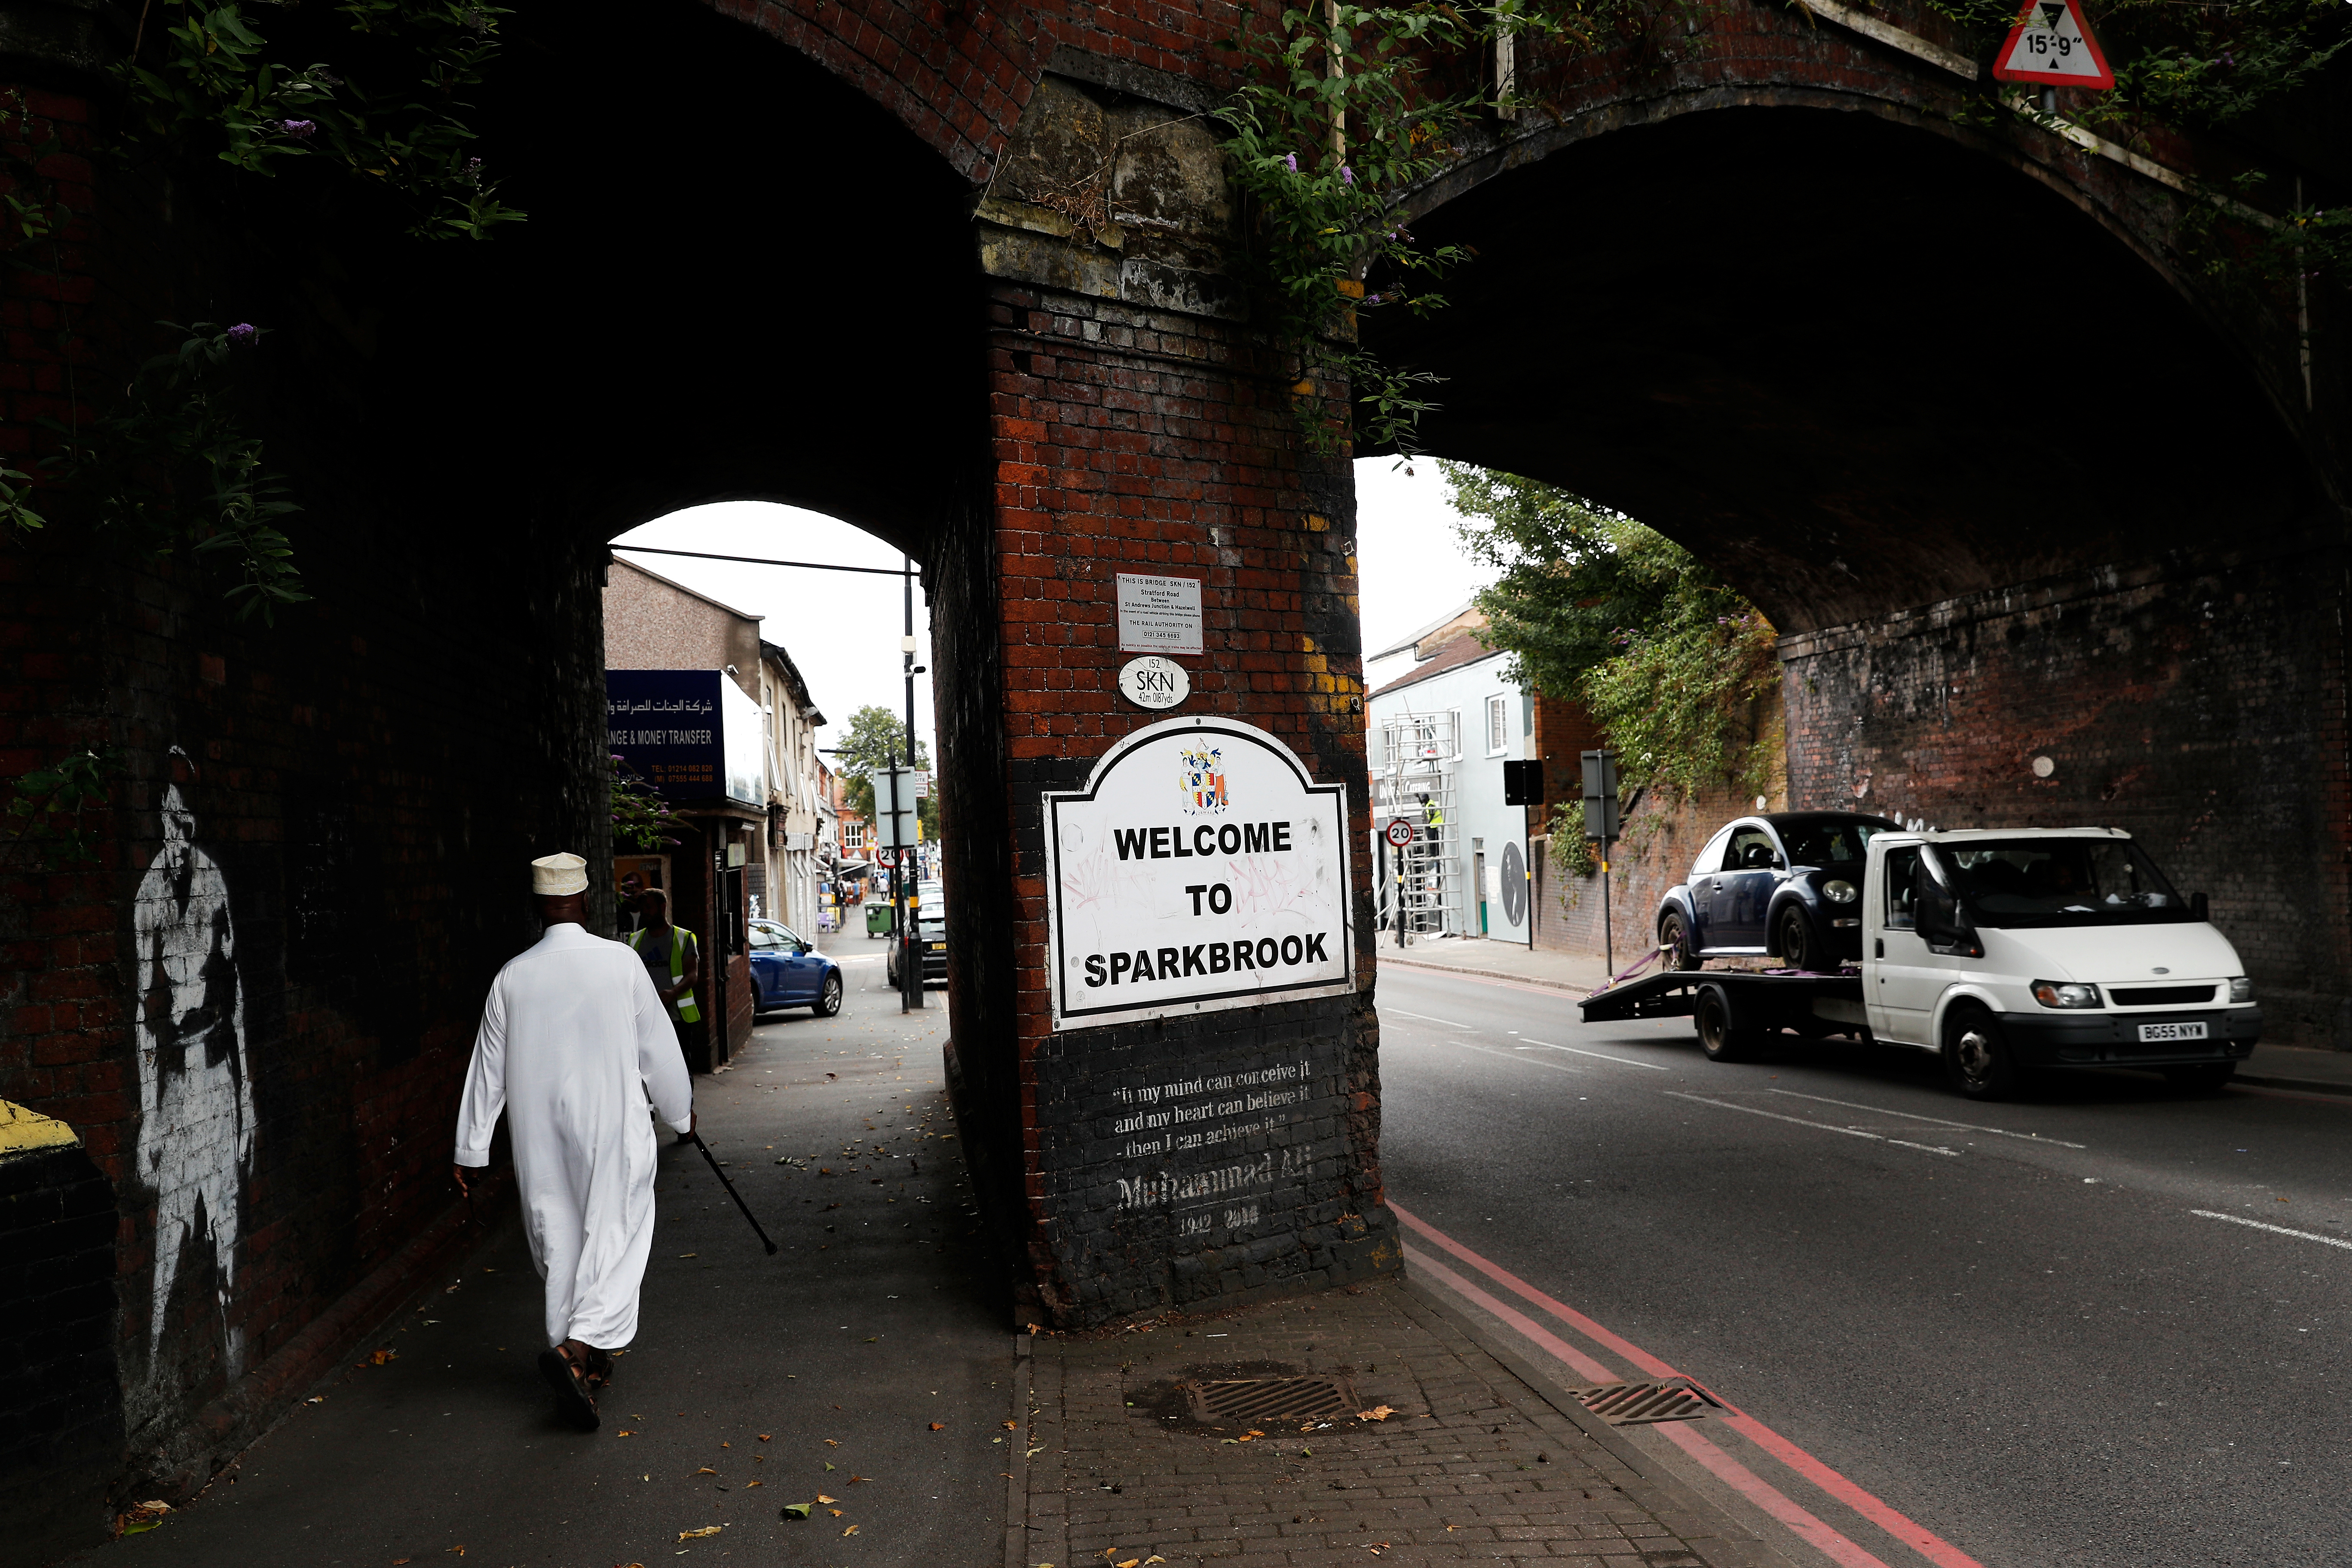 Deep Sadness And Growing Distrust: Inside The Neighbourhood That's Produced A Tenth Of The UK's Convicted Islamist